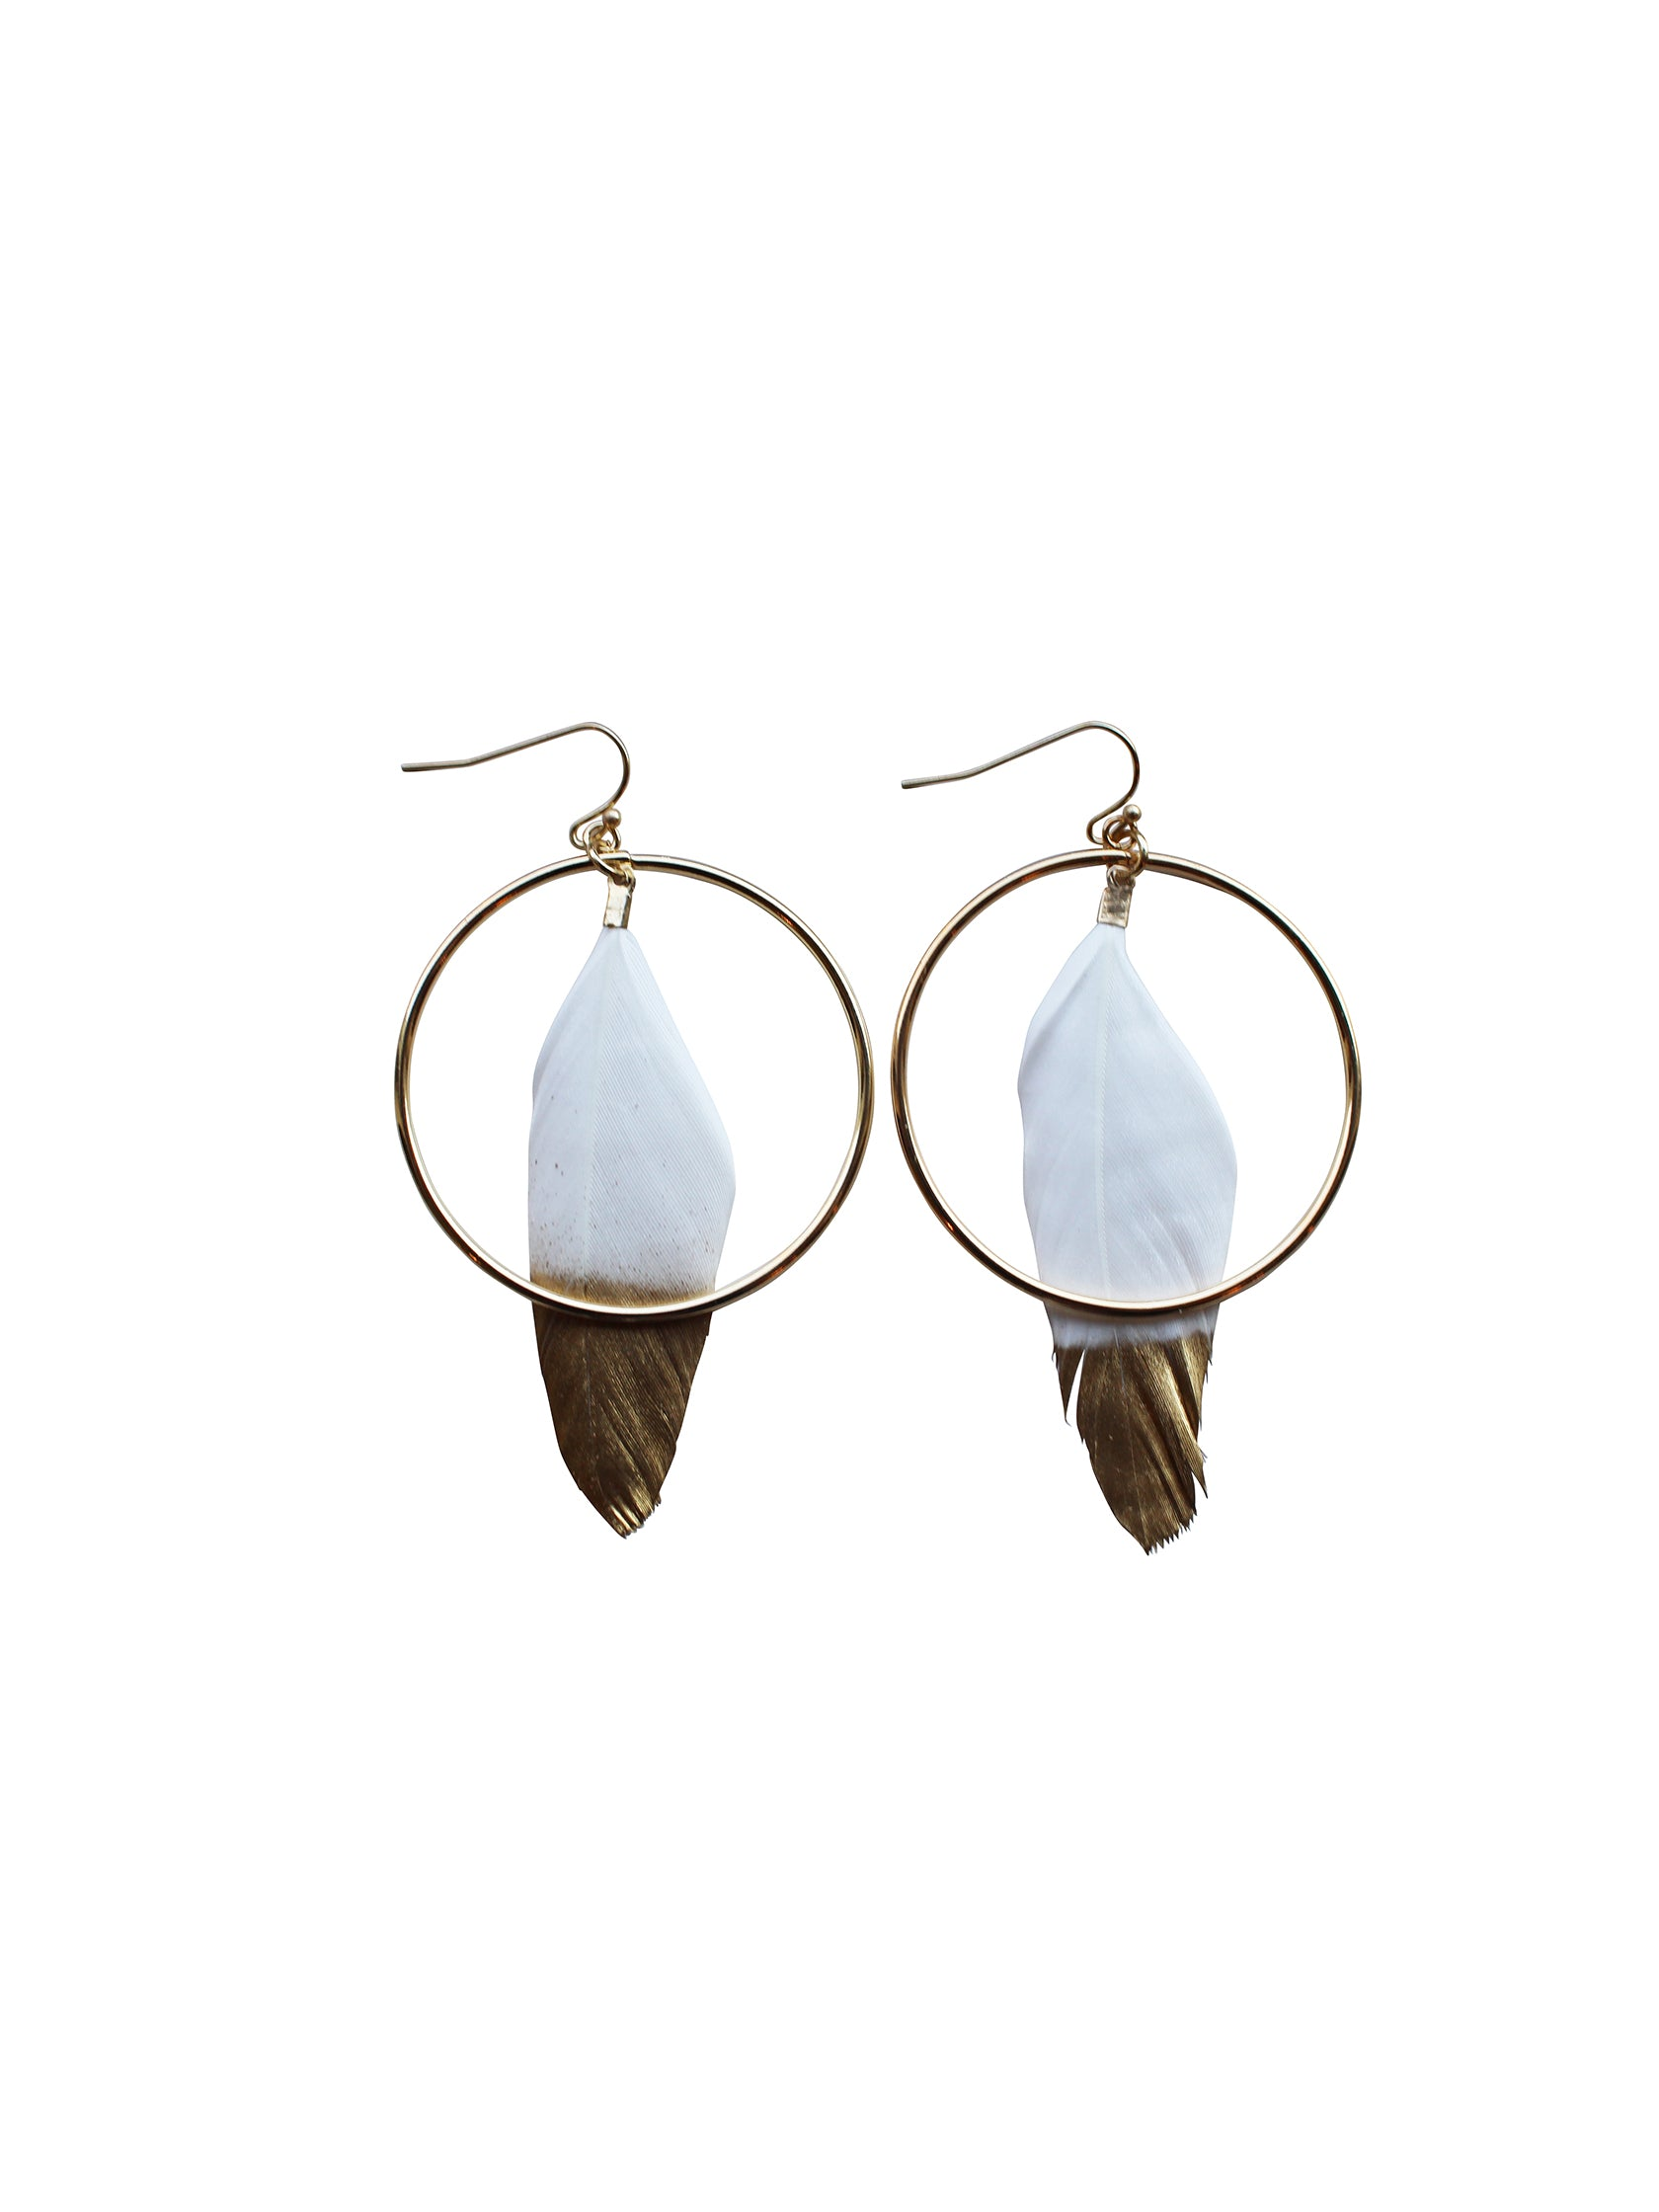 Women outfit in a earrings rental from Gemelli called Feather Hoops